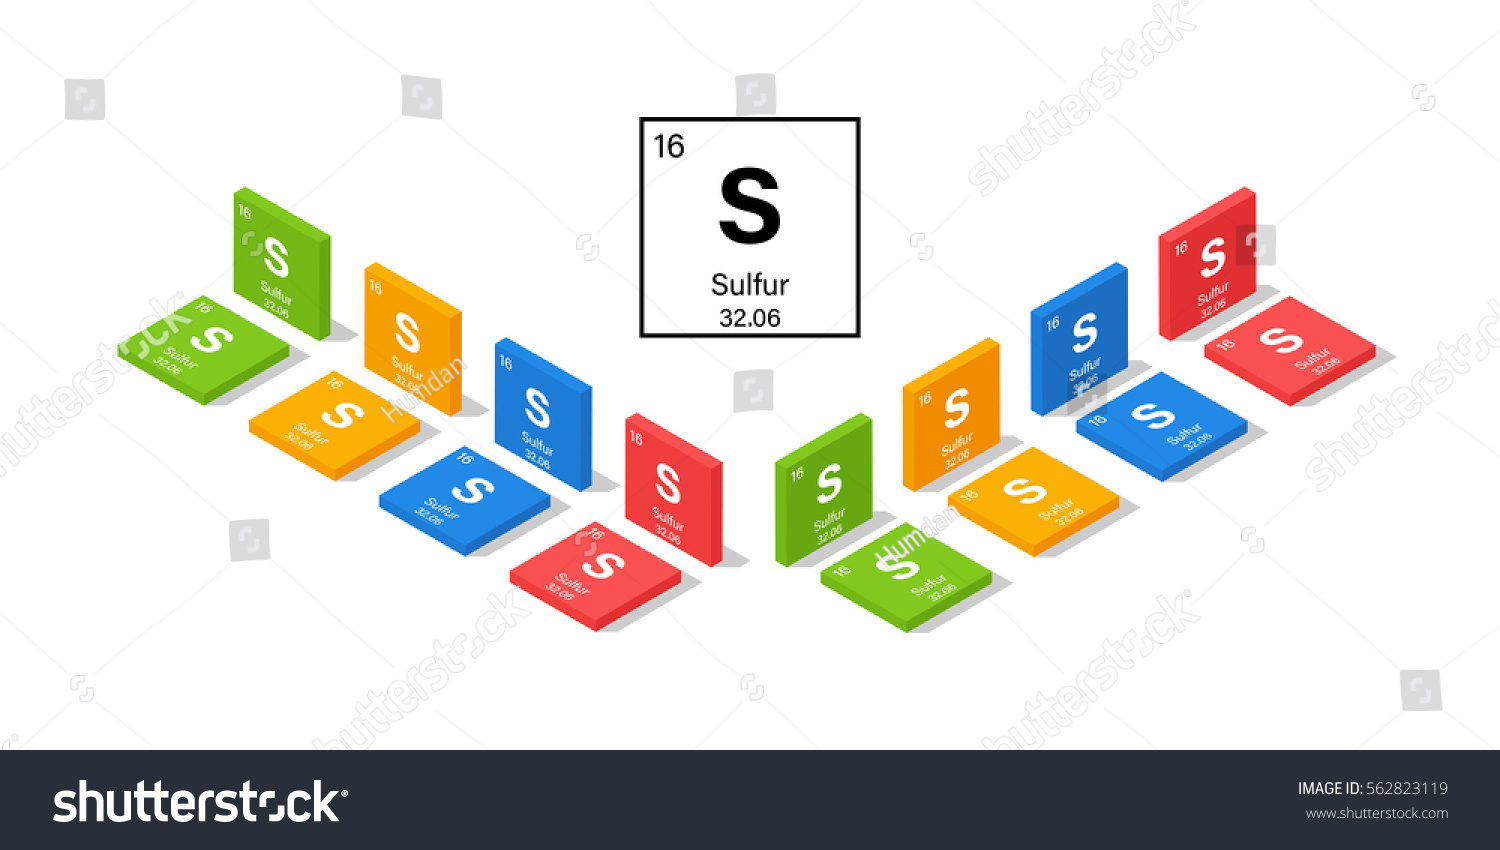 Elements periodic table sulfur 3d isometric stock vector 562823119 elements in the periodic table sulfur 3d isometric style vector illustration gamestrikefo Image collections